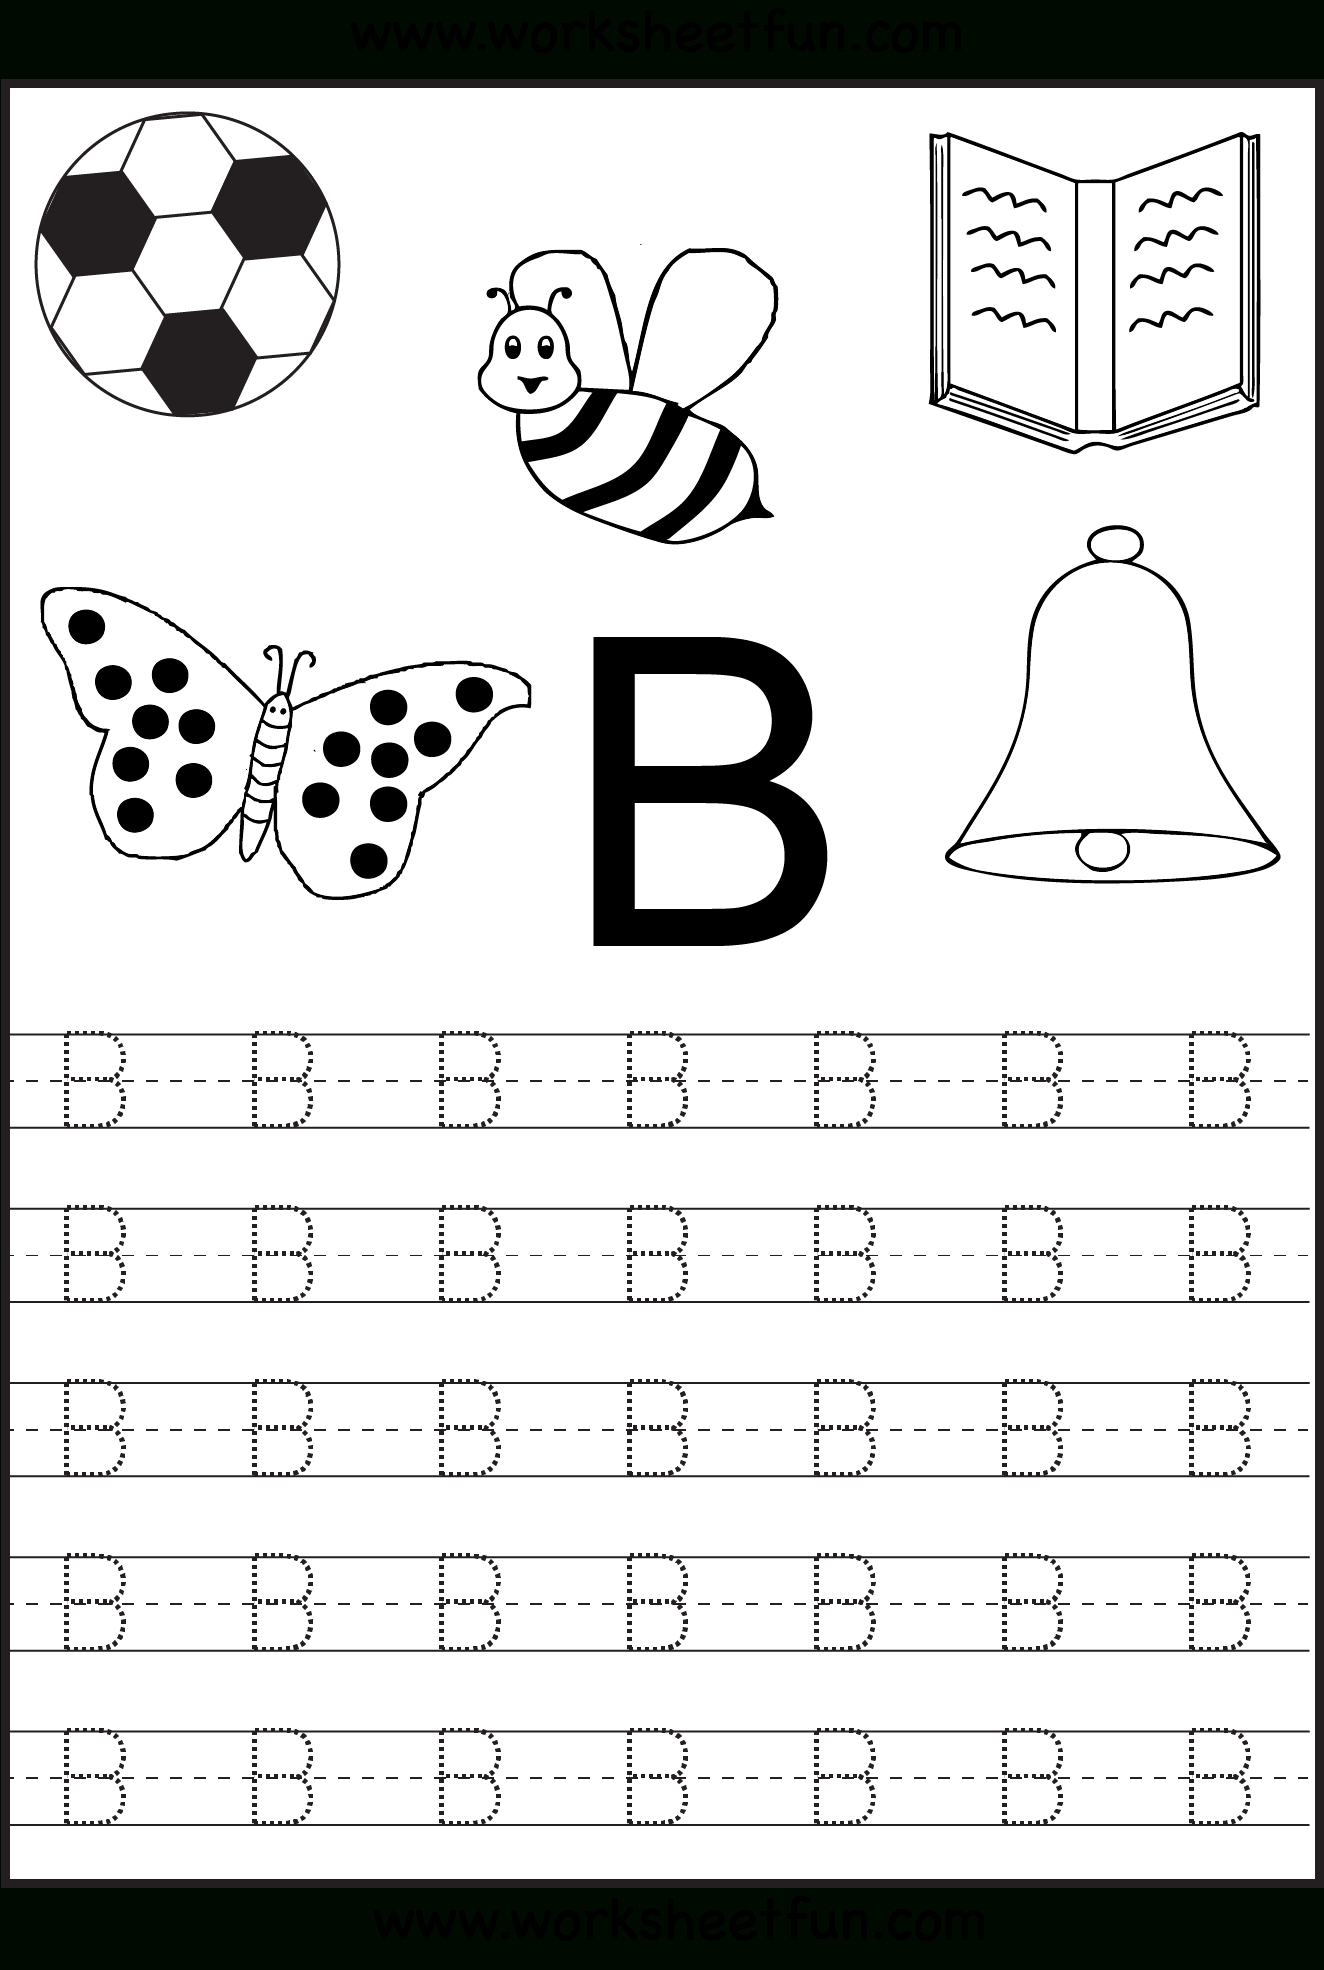 Free Printable Letter Tracing Worksheets For Kindergarten – 26 | Printable Letter Worksheets For Preschoolers